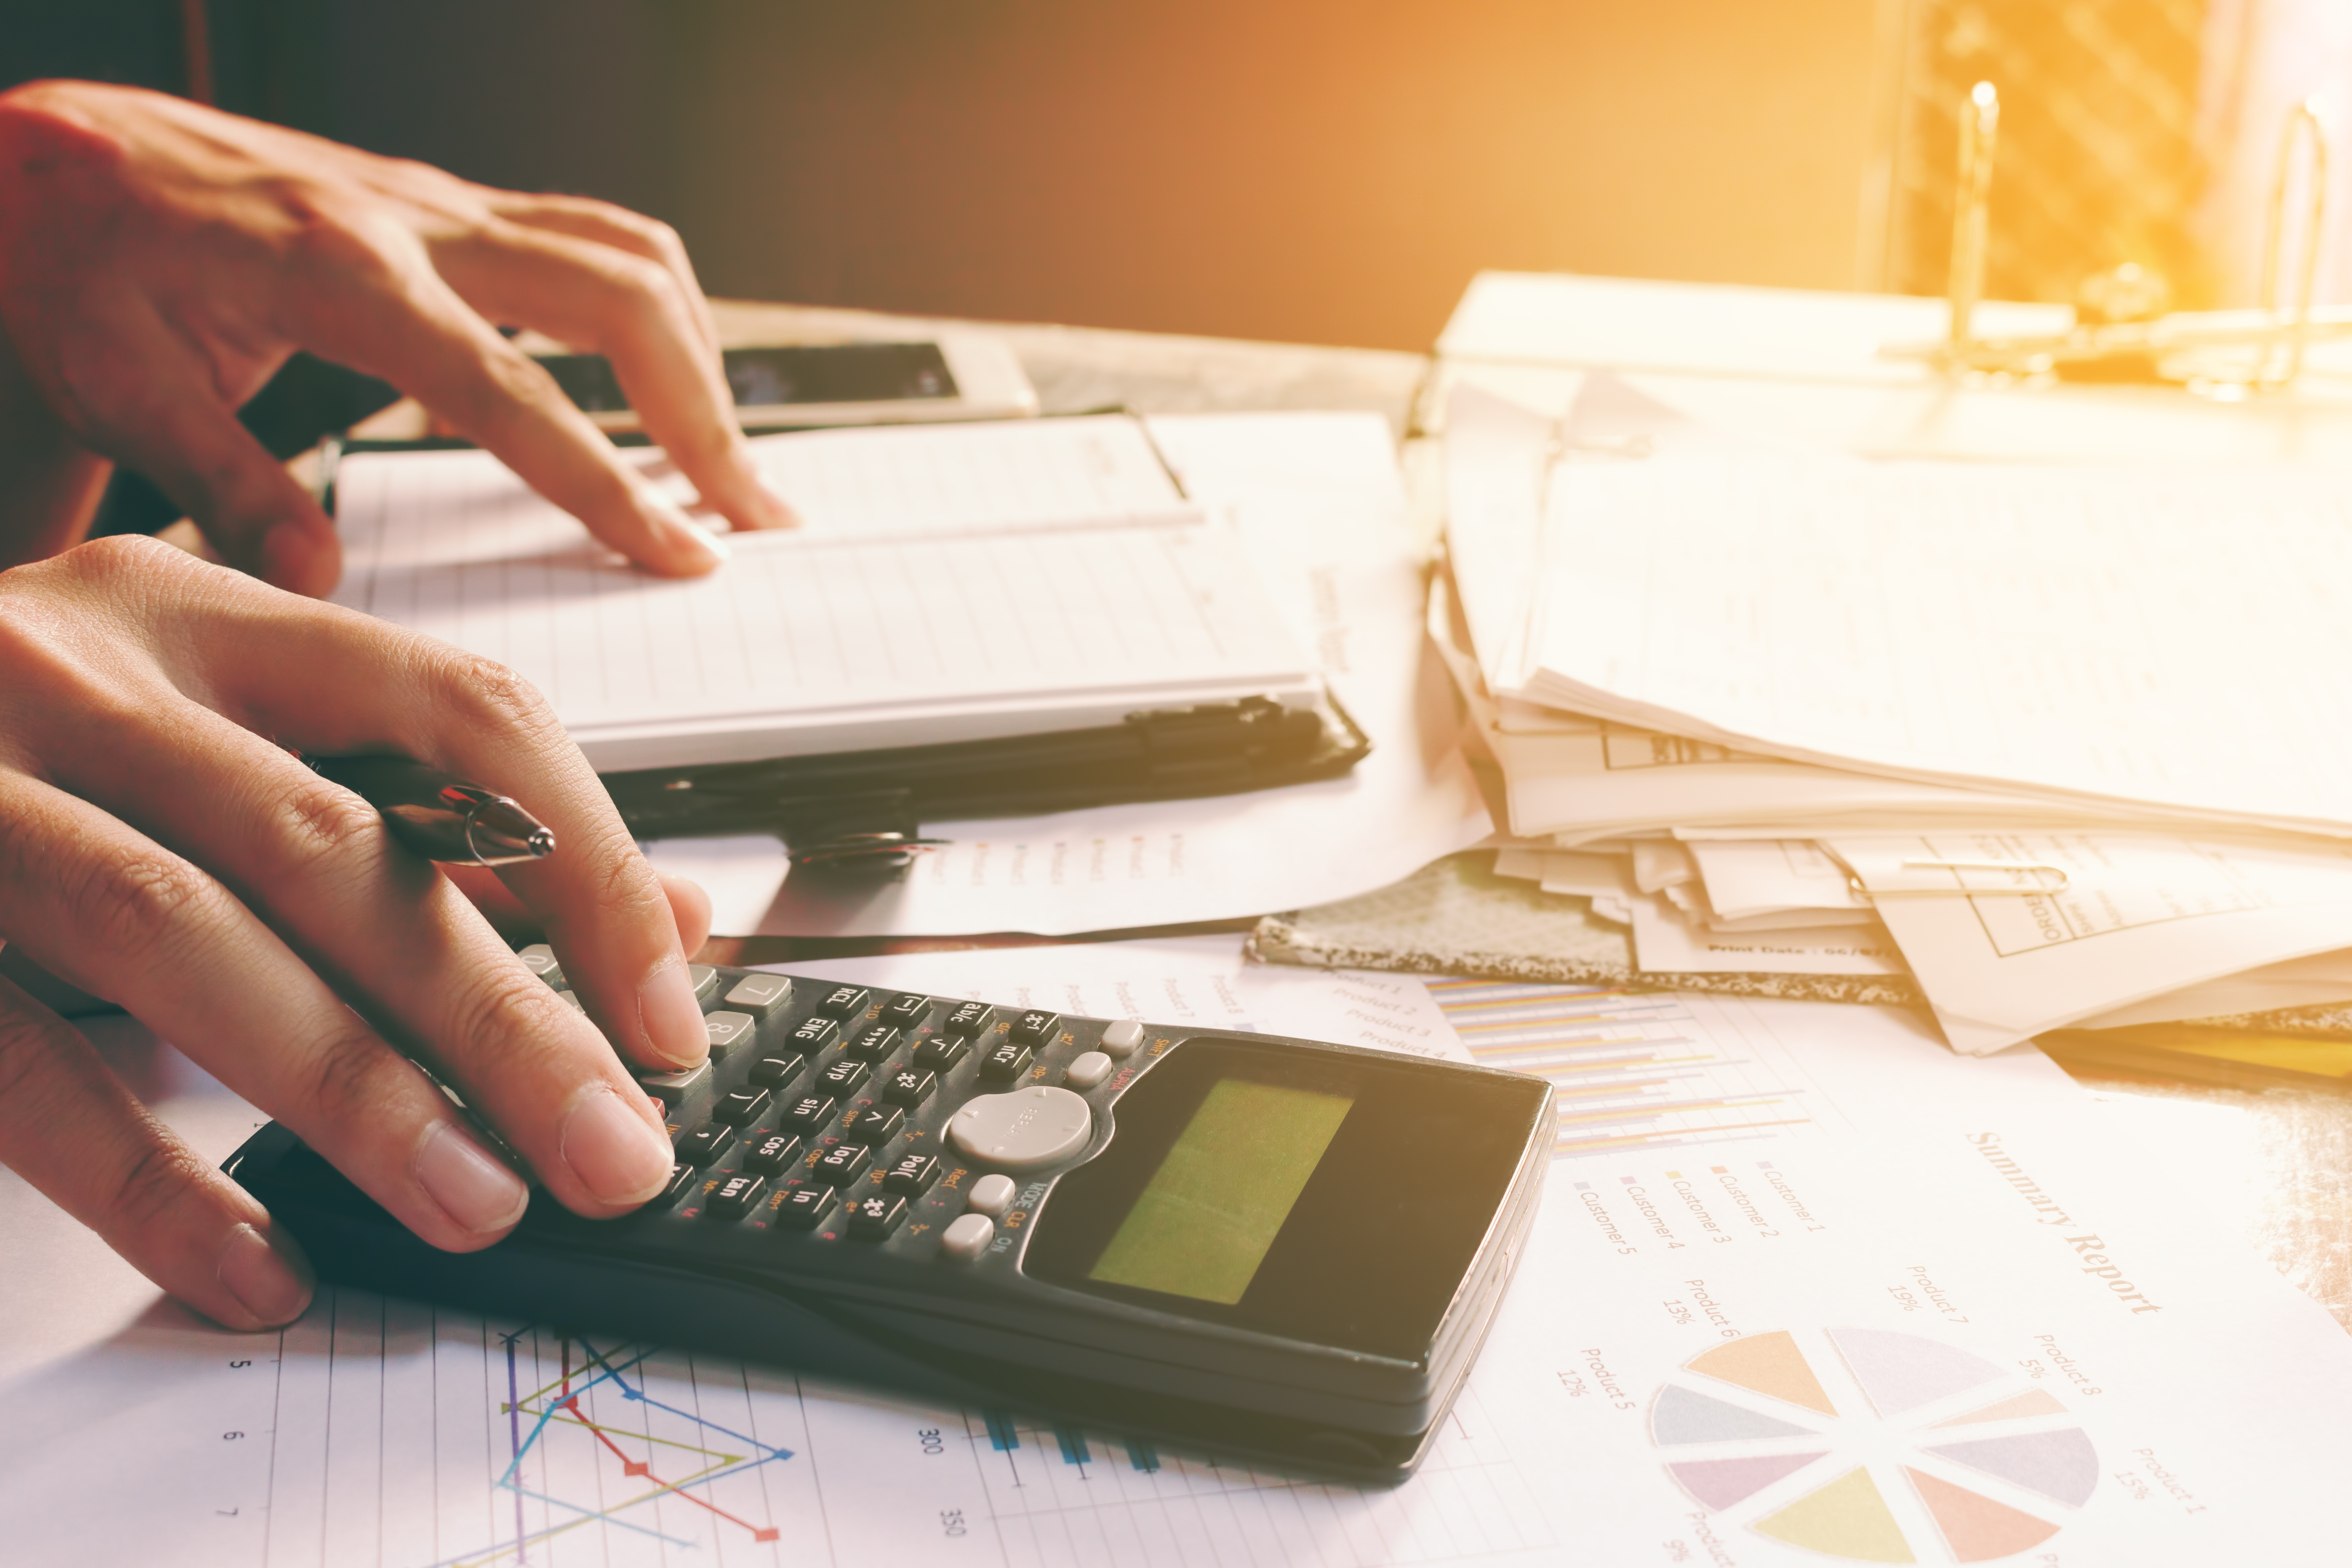 How Can My Business Reduce Operational Costs?